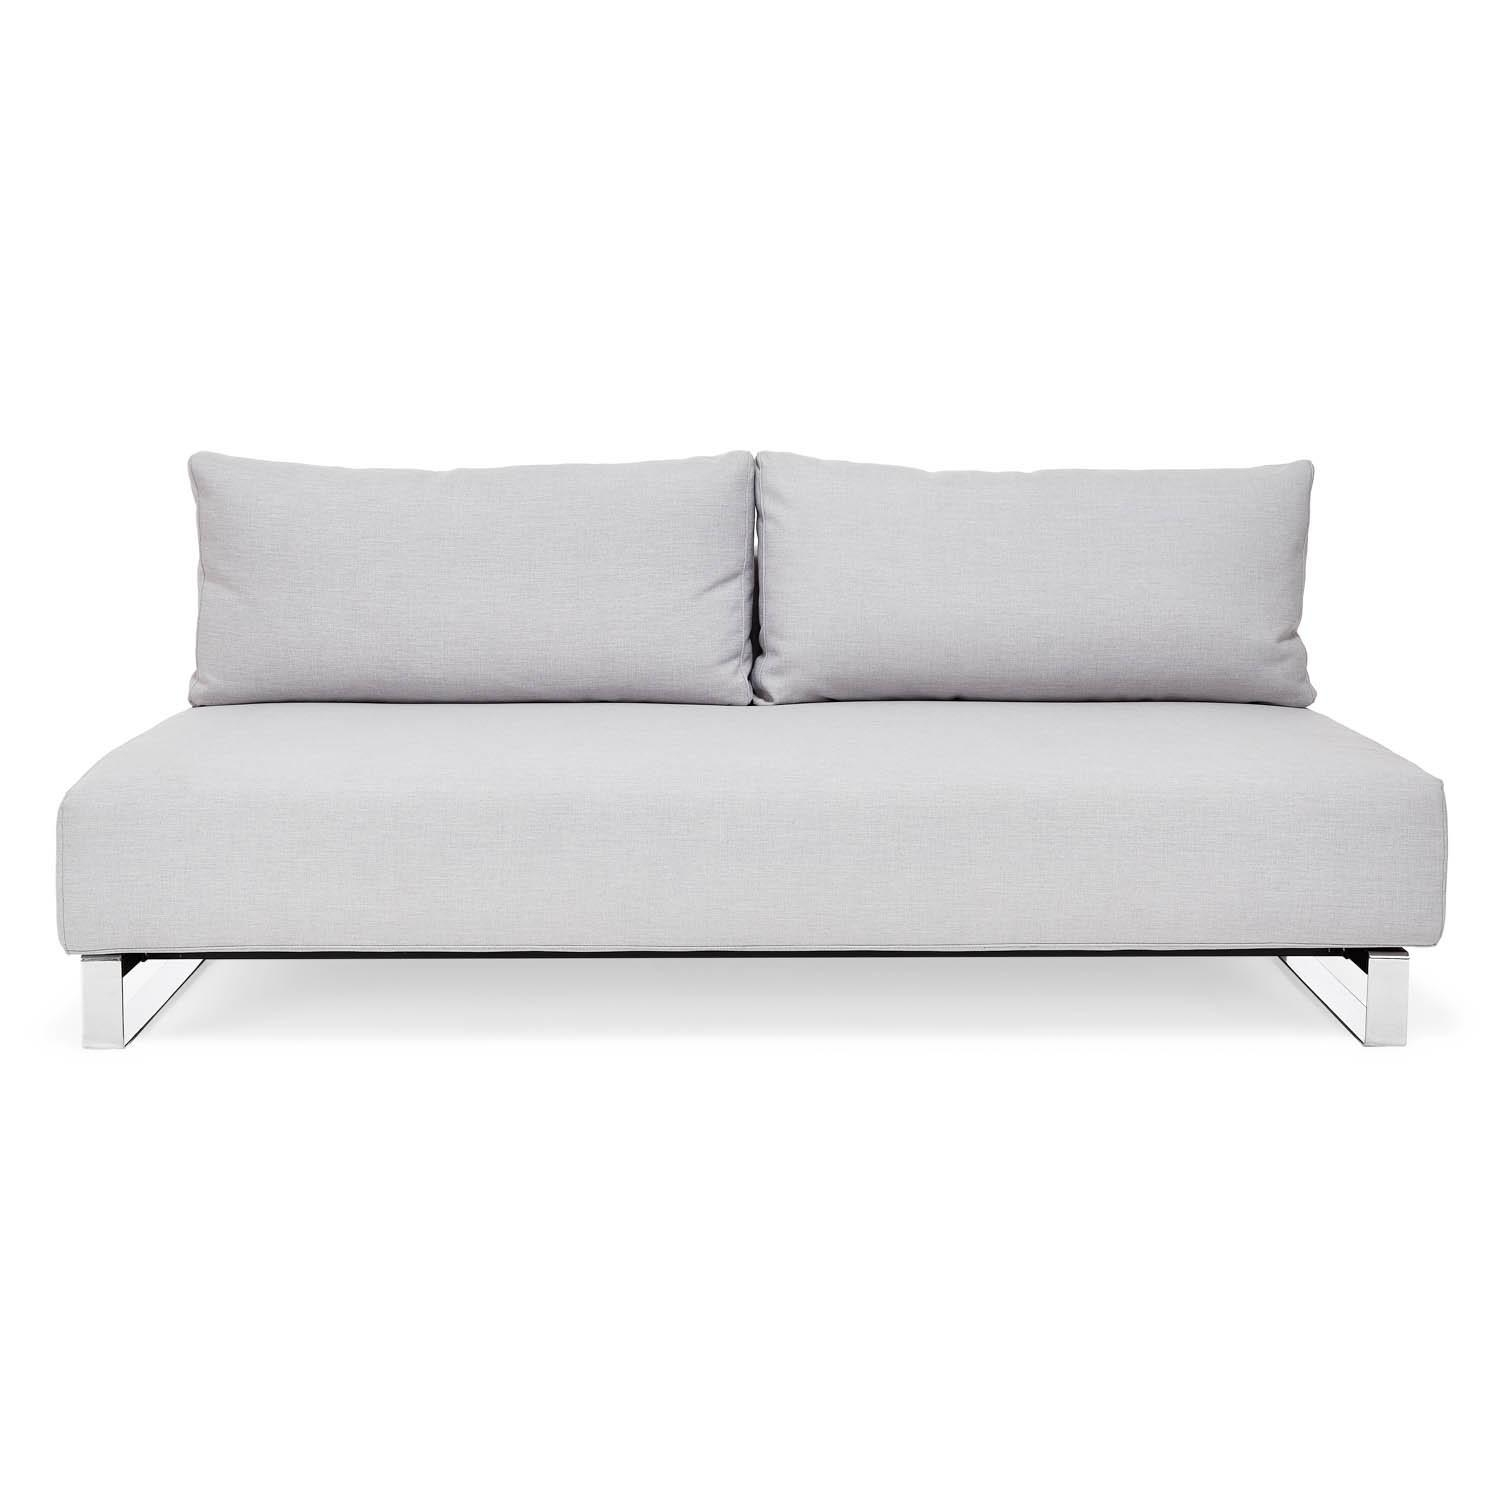 Futons, Daybeds & Sleeper Sofas Are Available At Abc Home Pertaining To Sofa Day Beds (View 2 of 20)